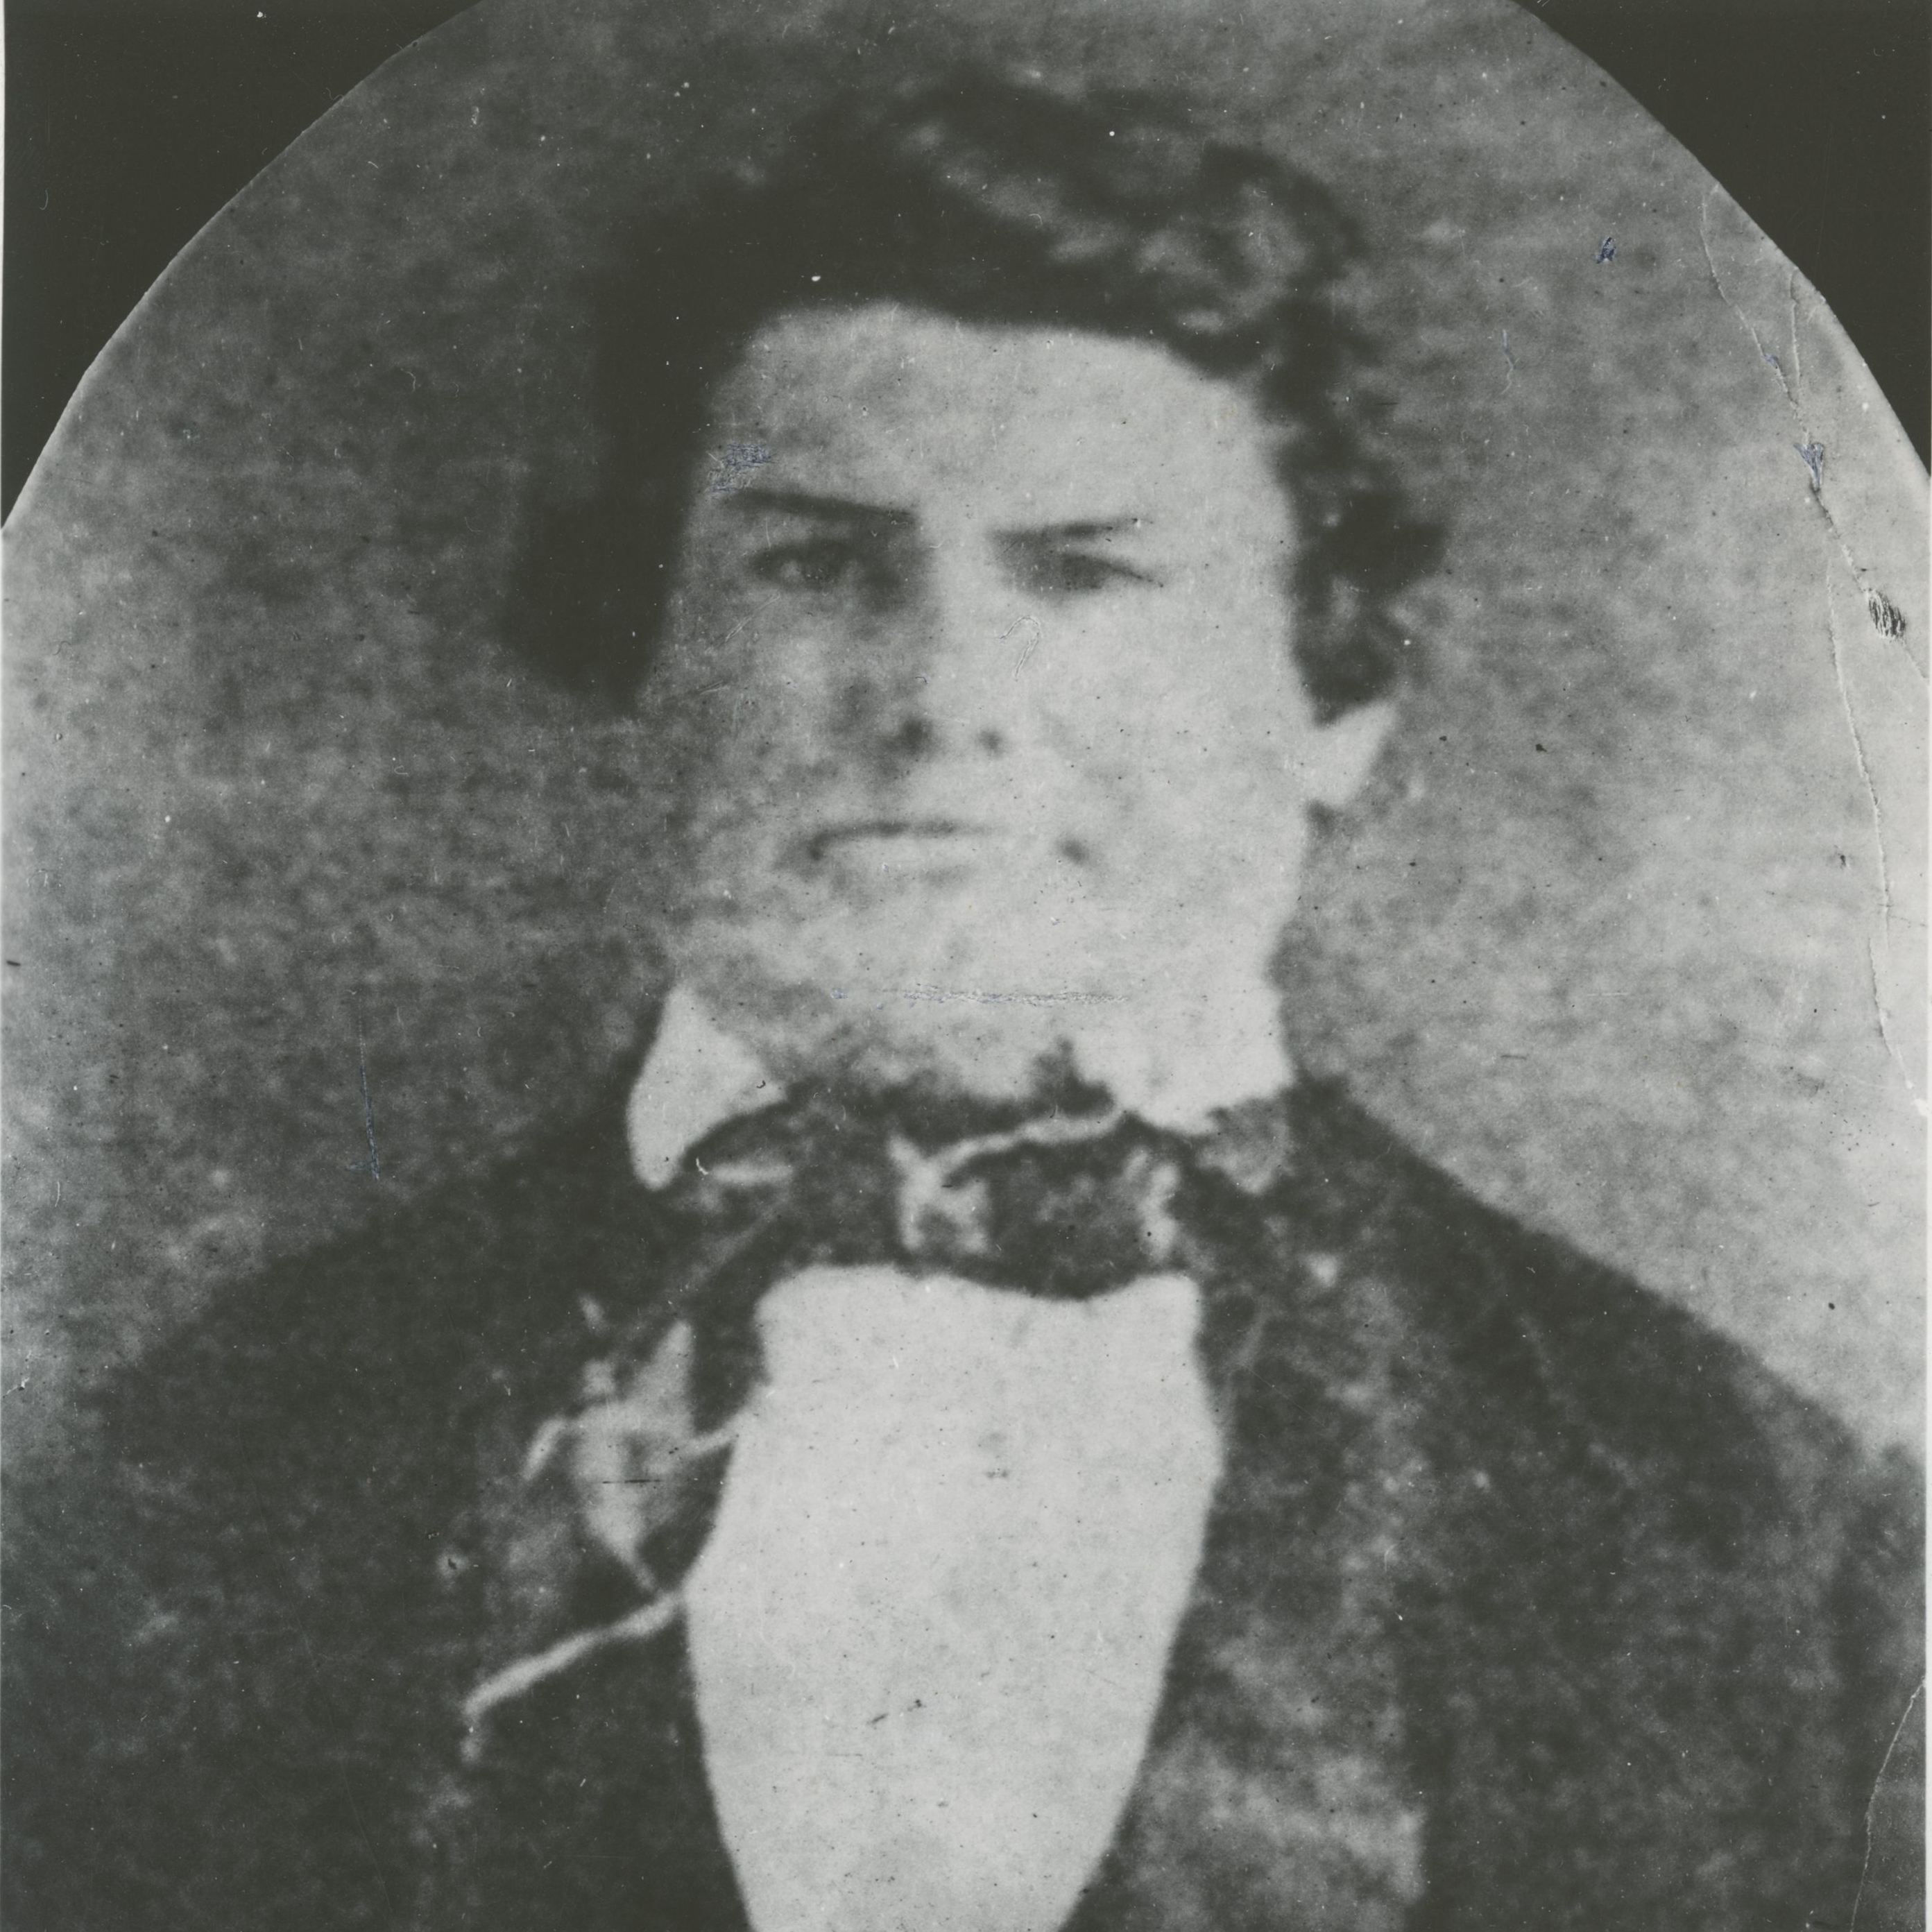 Benjamin L. Clapp in the late 1850s